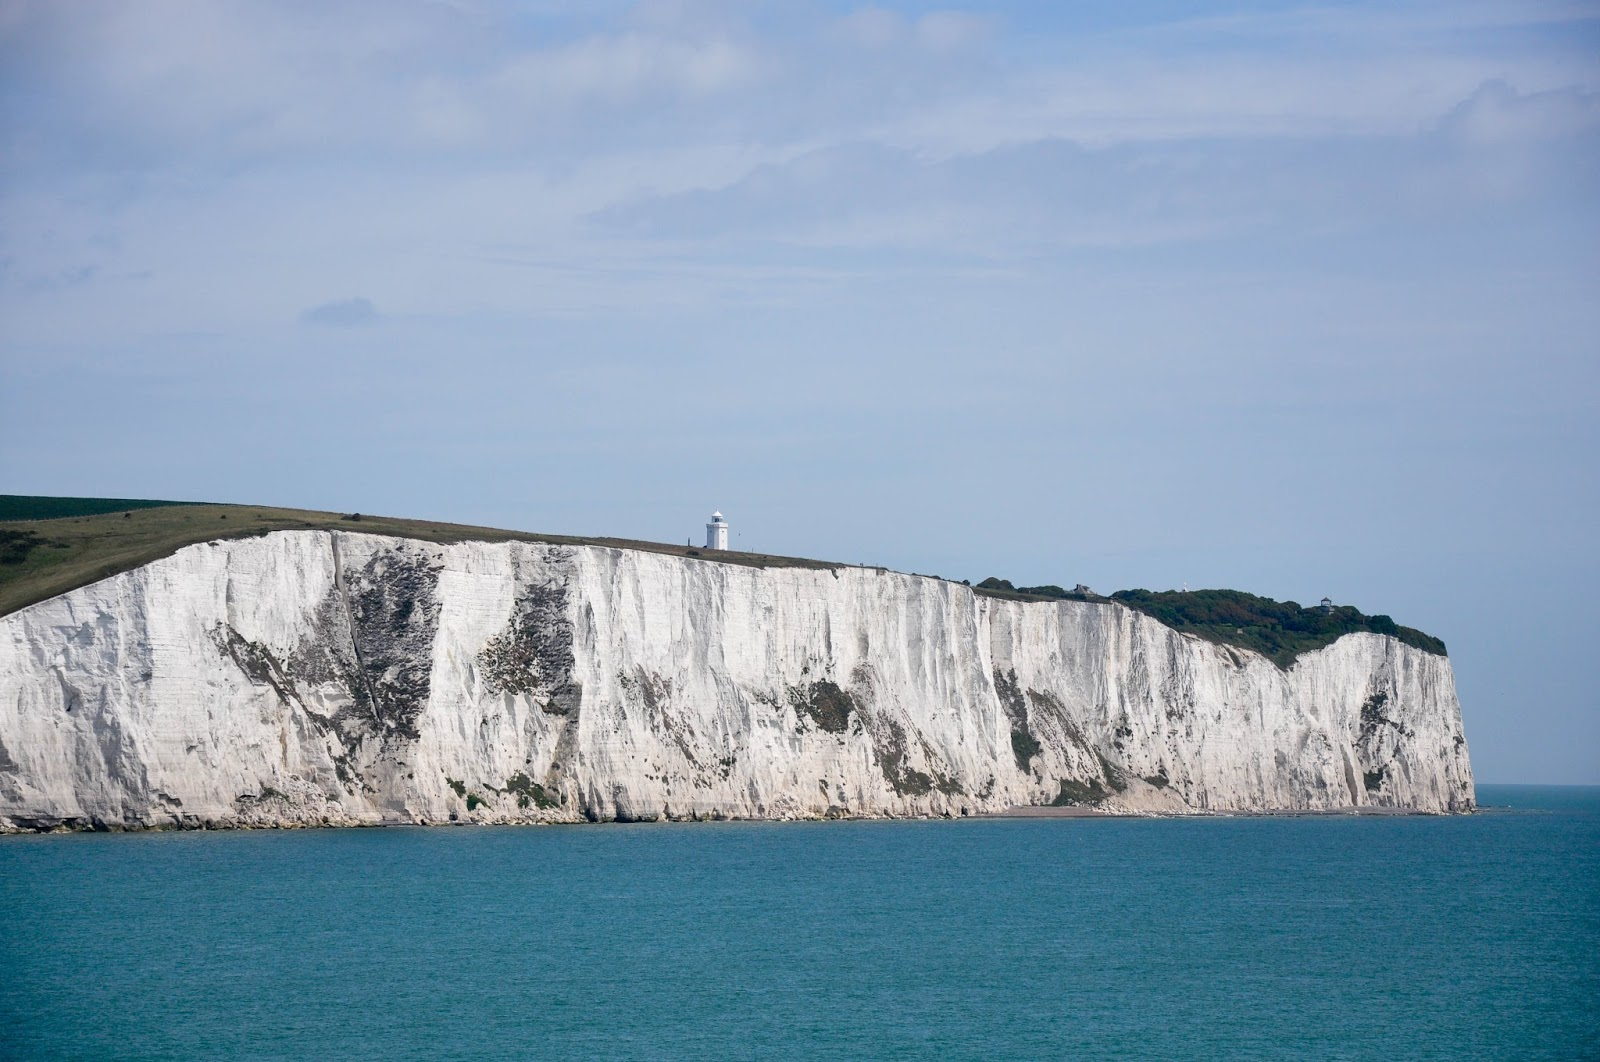 The white cliffs of Dover seen from a DFDS ferry after crossing the English Channel back from France